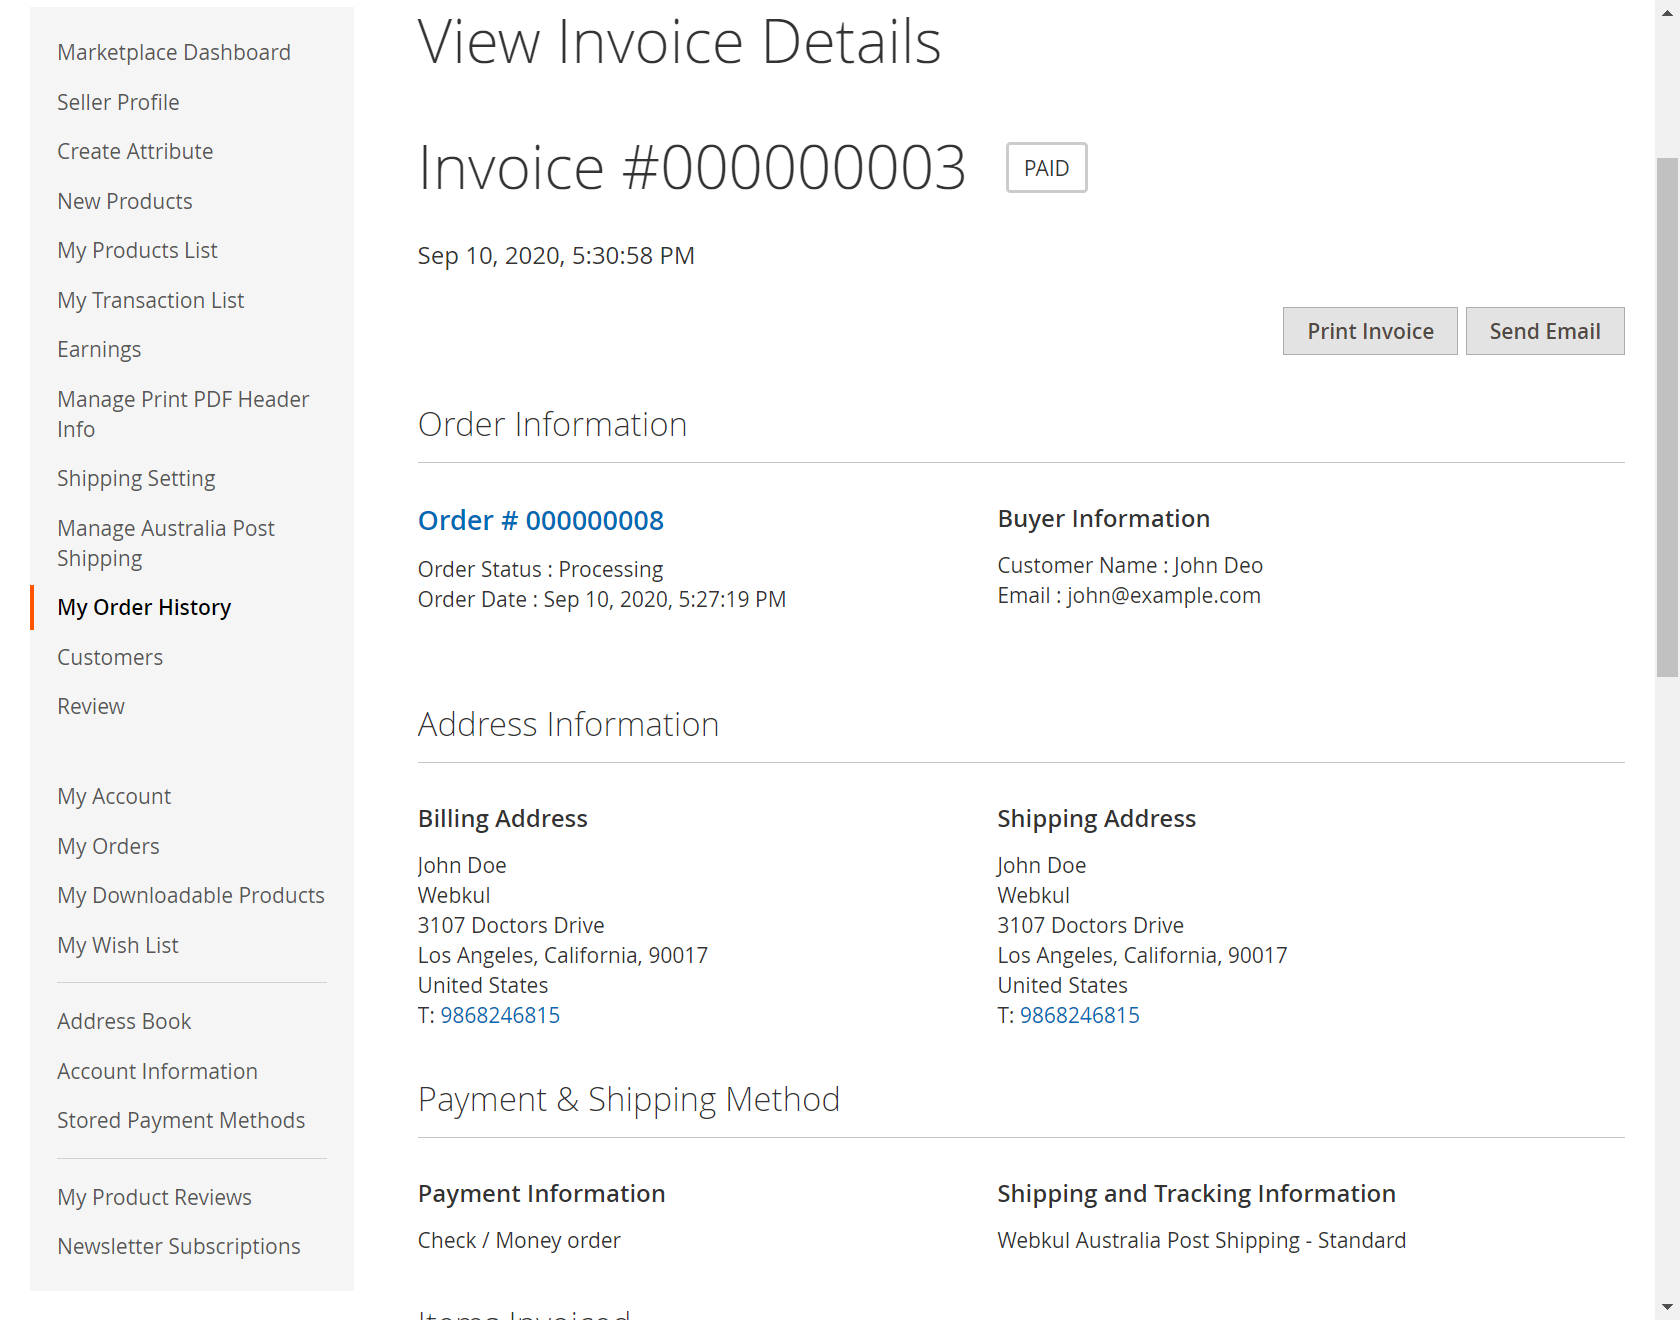 www.devmage.com_12450_marketplace_order_invoice_view_order_id_8_invoice_id_3_office_store